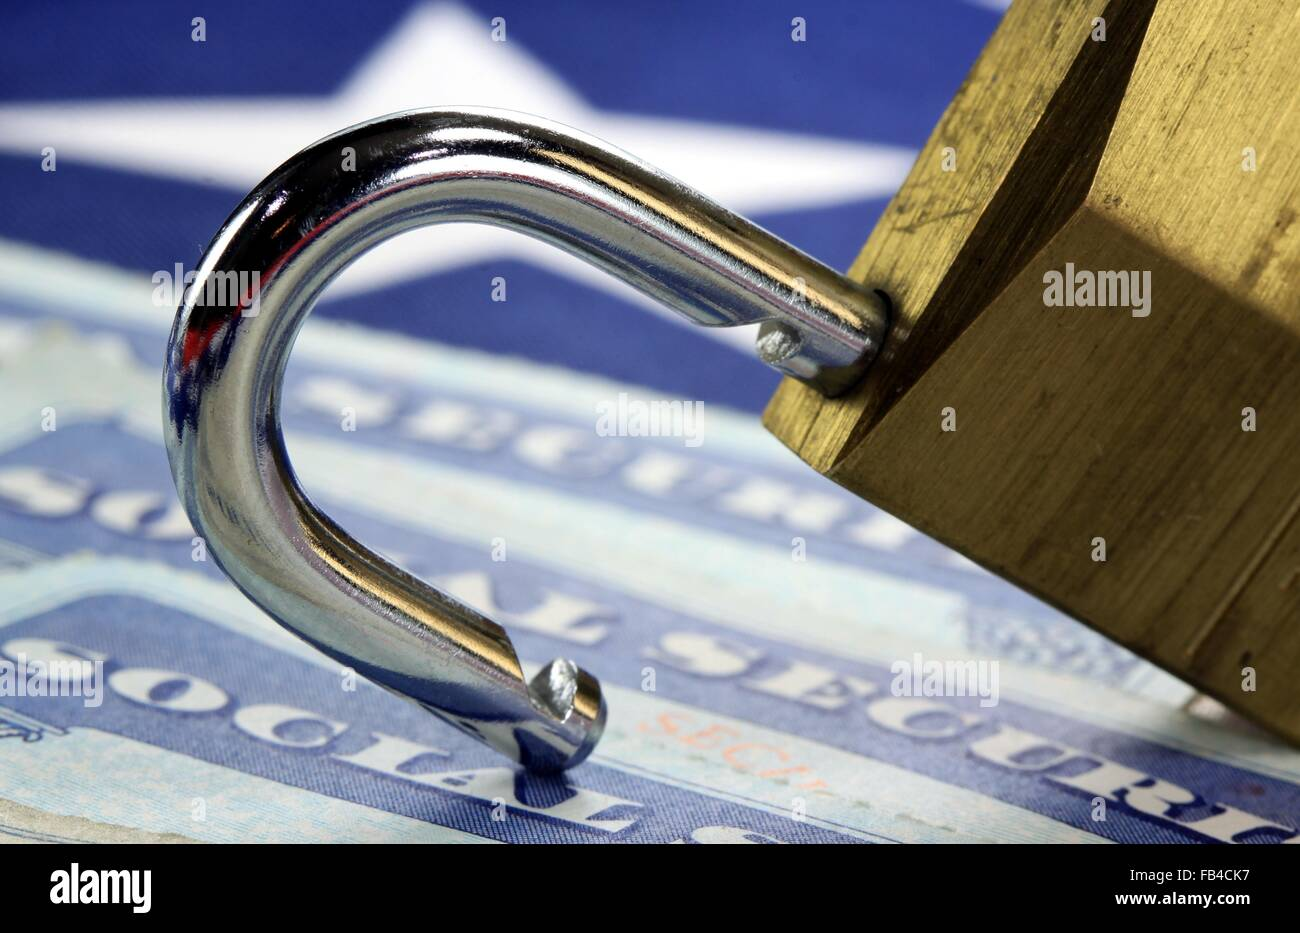 Padlock and social security card - Identity theft and identity protection concept - Stock Image